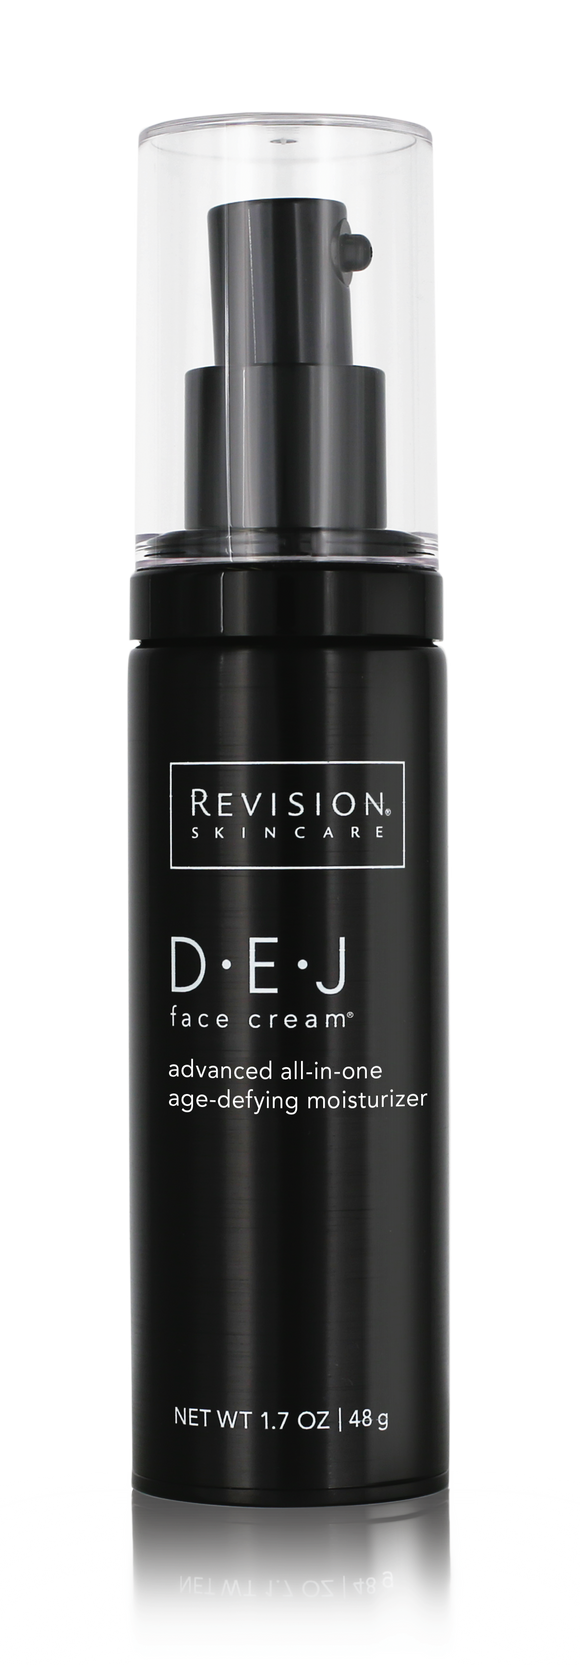 REVISION D.E.J FACE CREAM